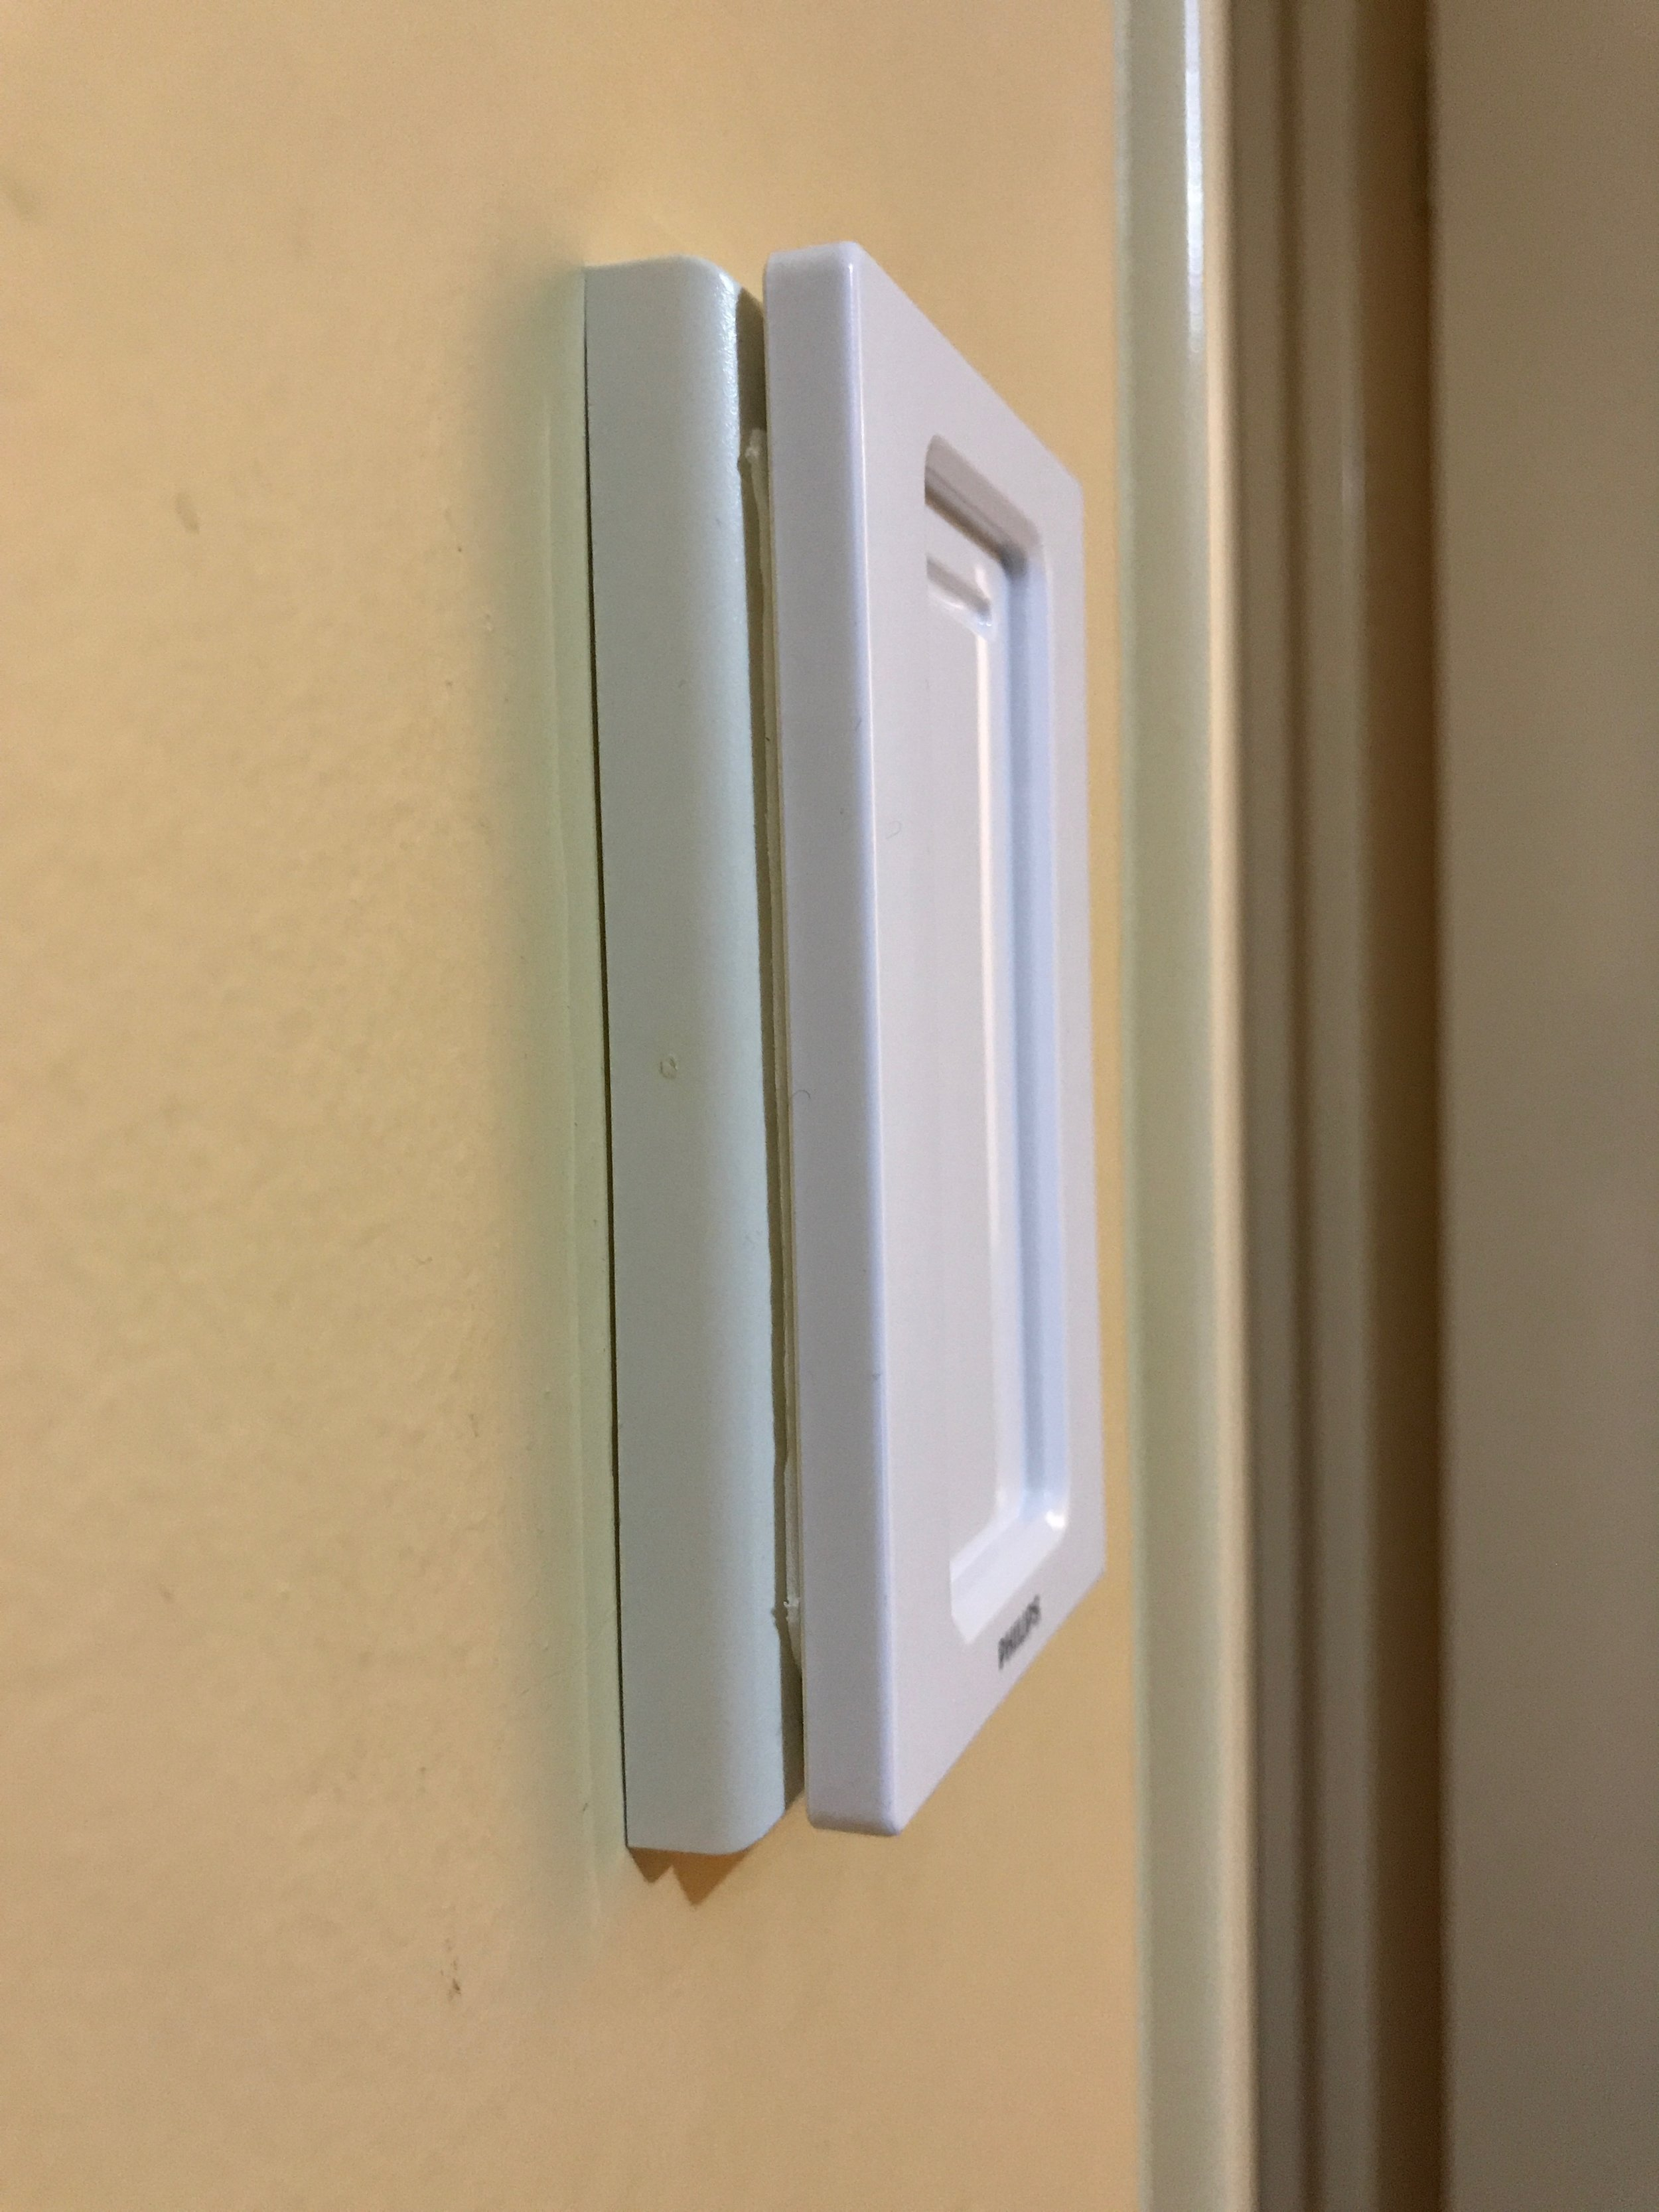 Step 3 - Dimmer Plate Attached